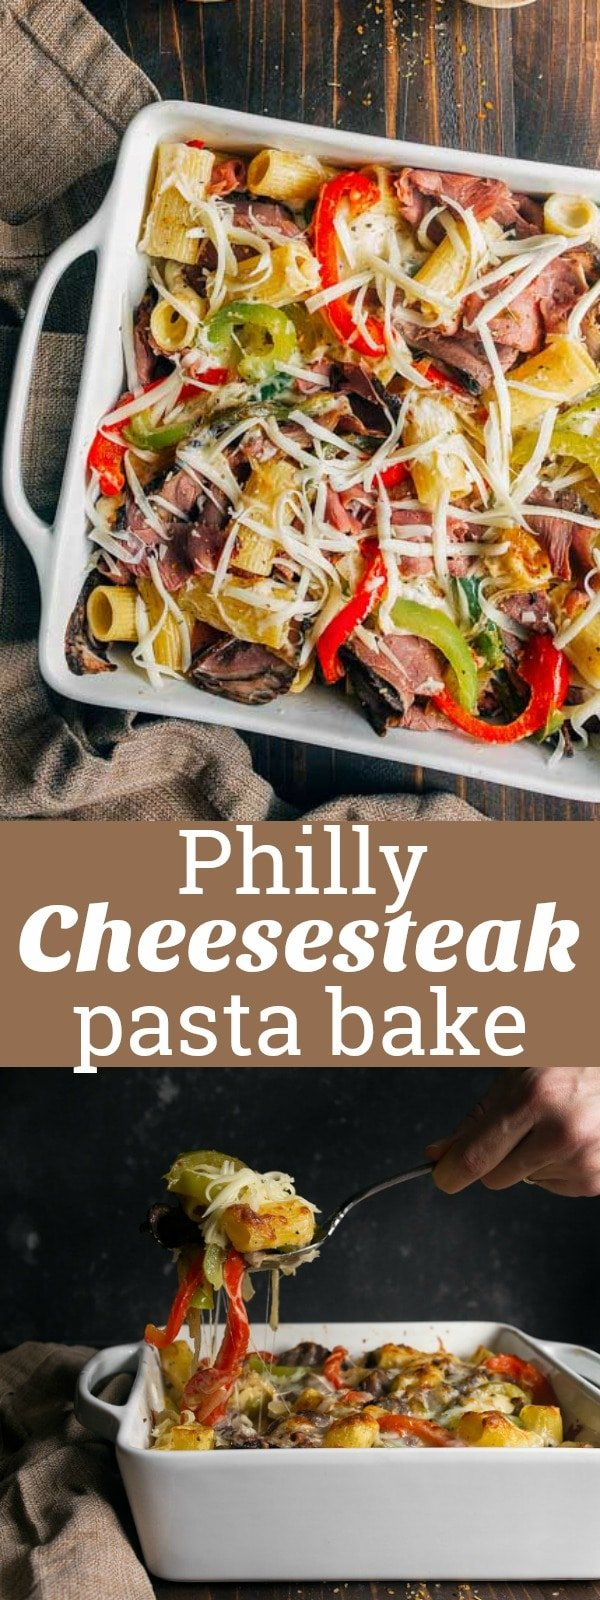 Philly Cheesesteak Pasta Recipe: baked rigatoni in provolone cheese sauce with peppers, onions, and steak. Baked pasta recipe for two.